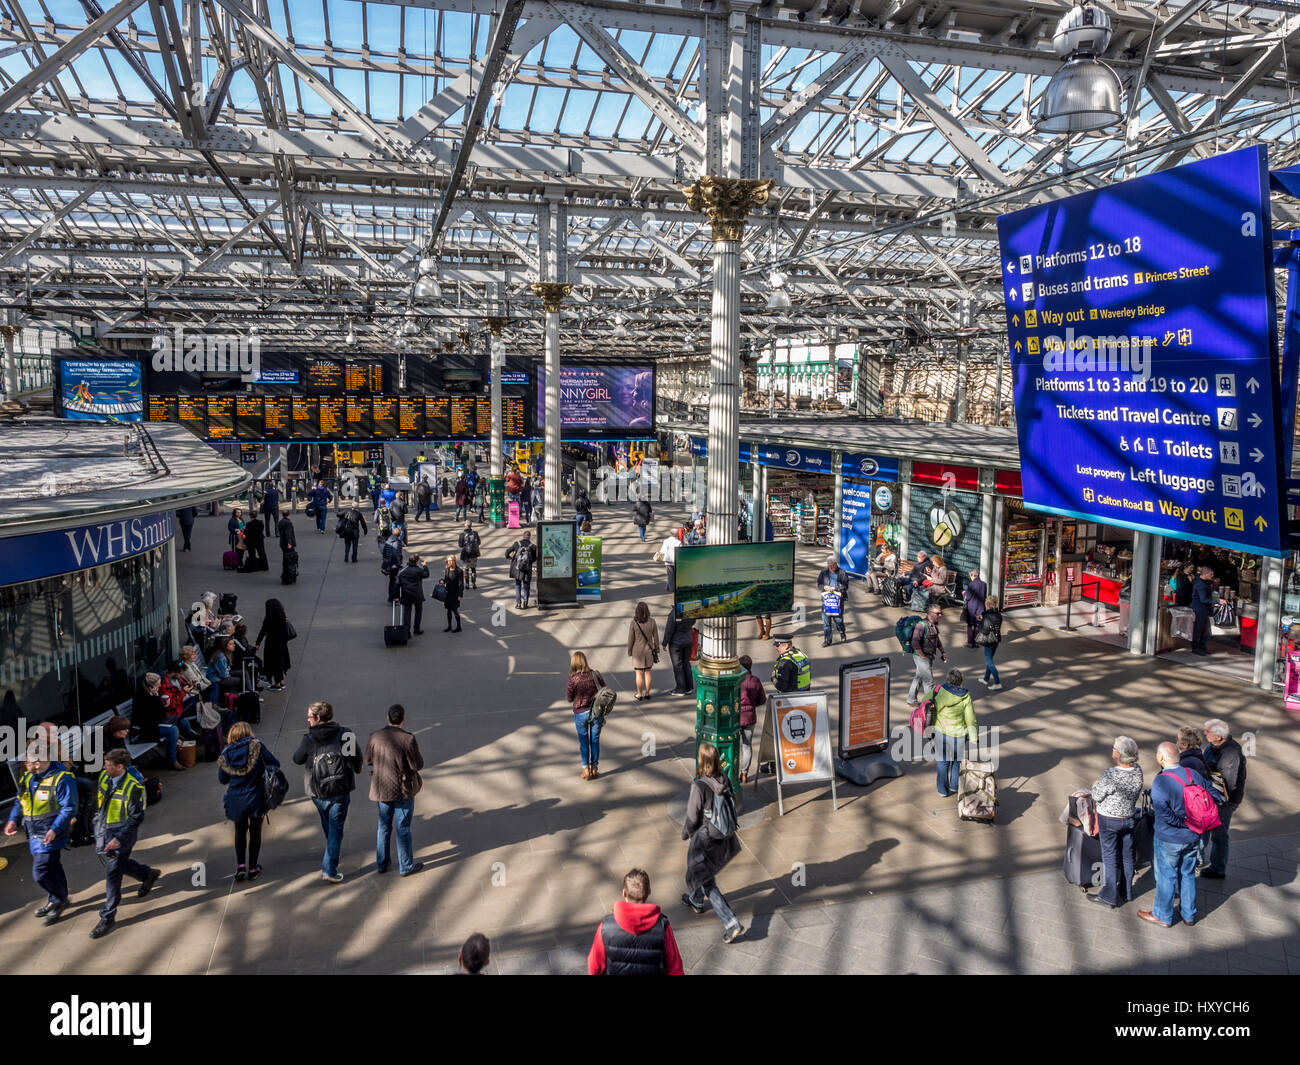 Edinburgh Waverley Station - Main concourse with commuters and travellers - Stock Image